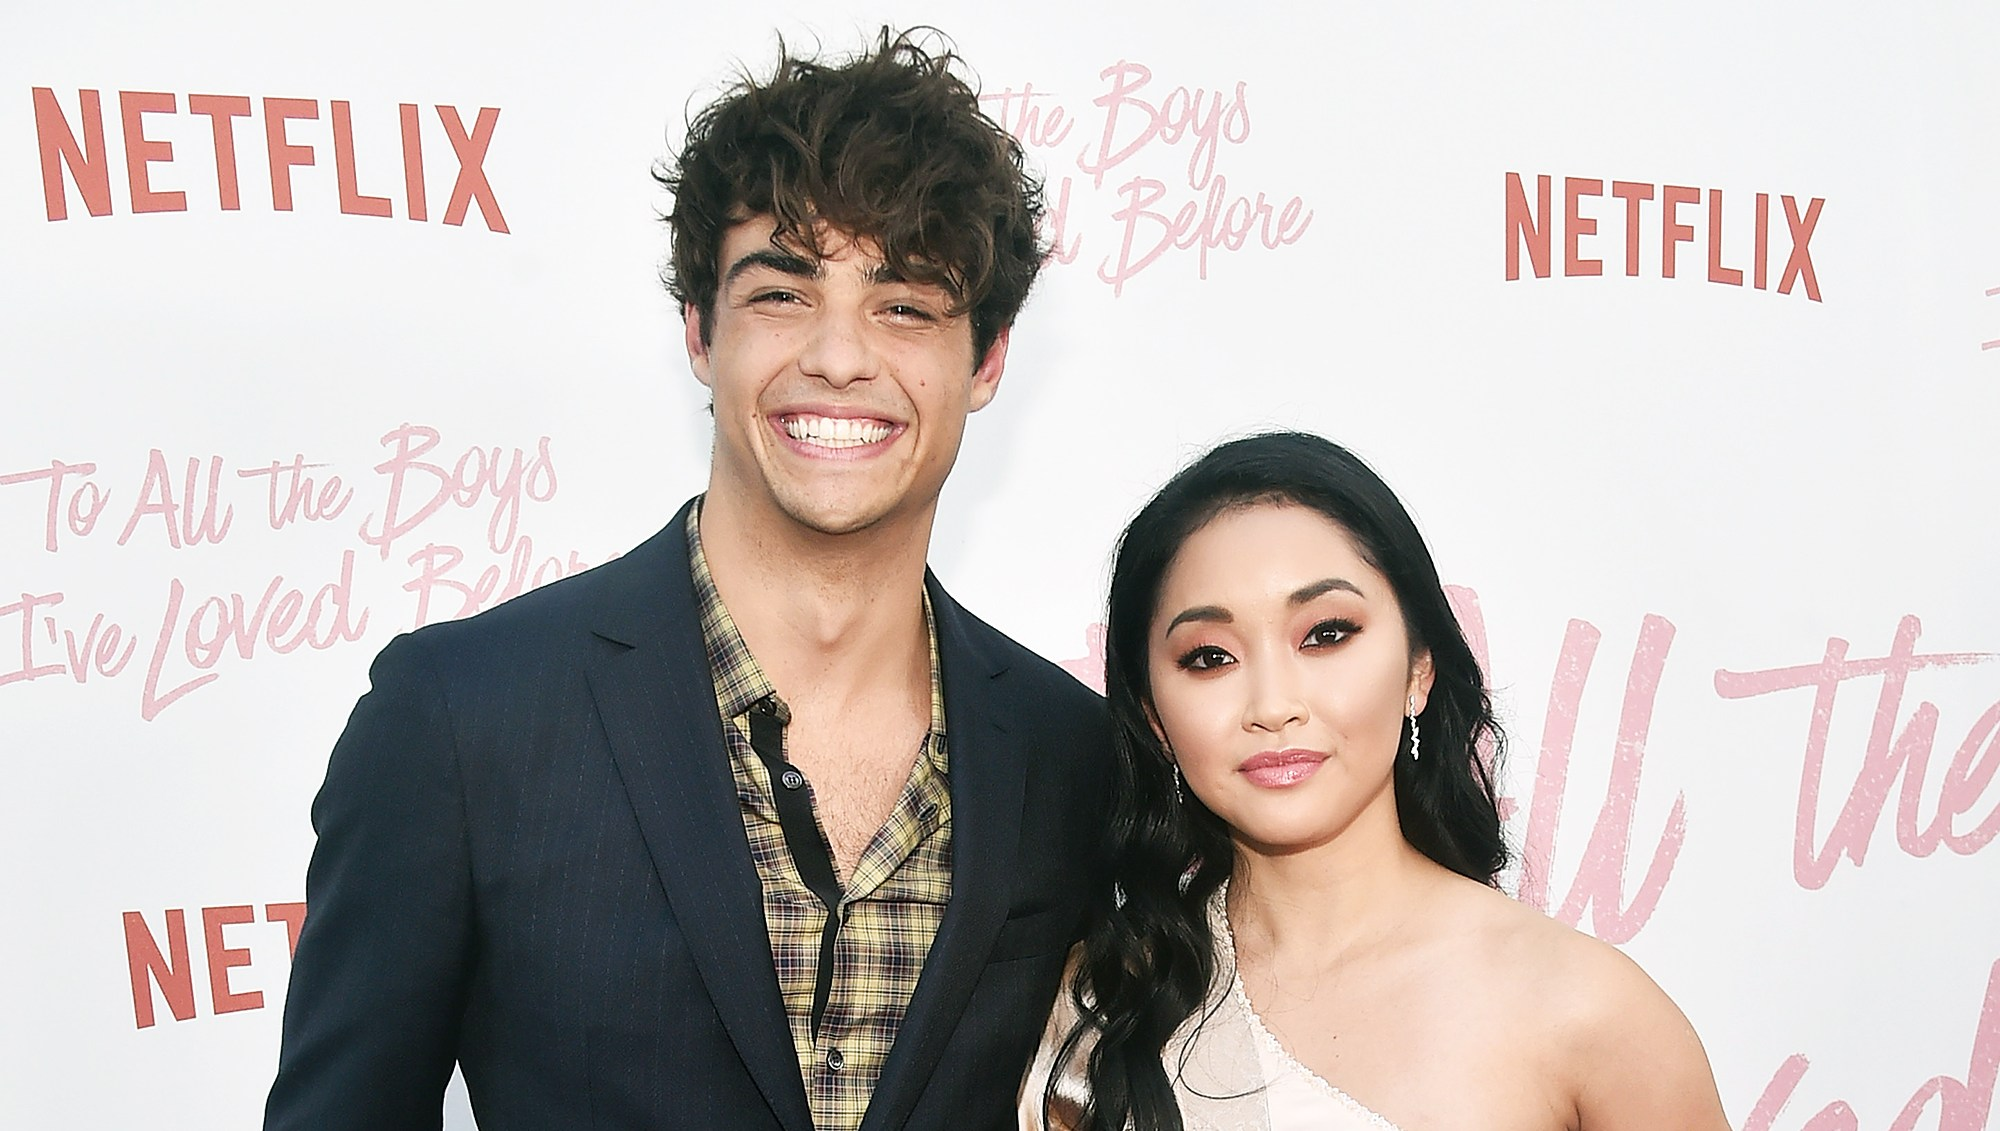 Noah Centineo Lana Condor To All The Boys I've Loved Before Netflix Horror Film